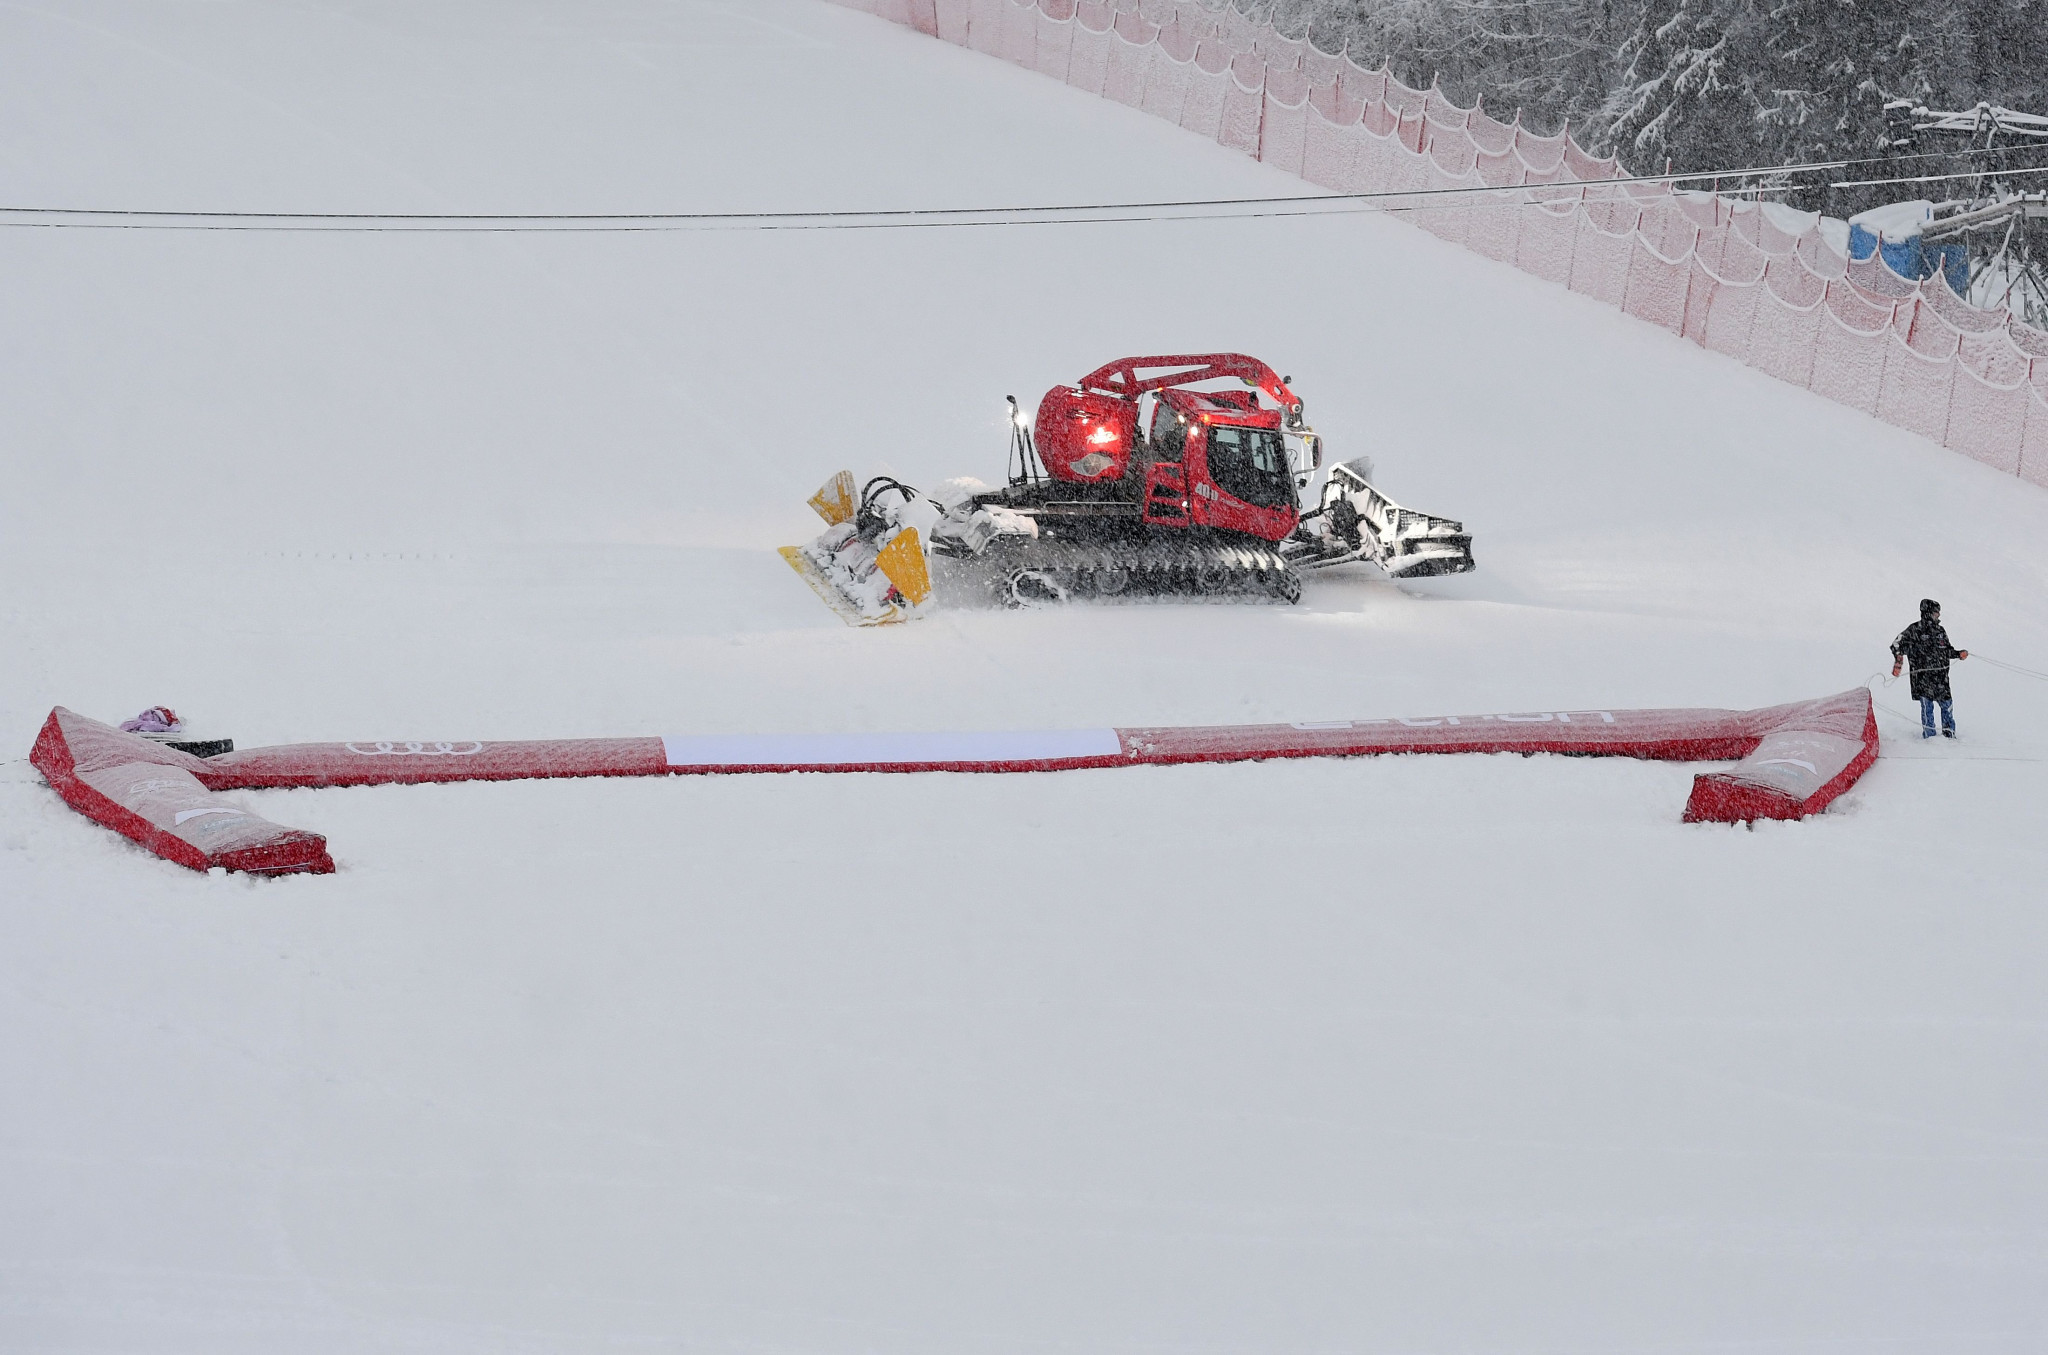 Organisers said the over 30 centimetres of snow fell on the top of the course in the German resort ©Getty Images